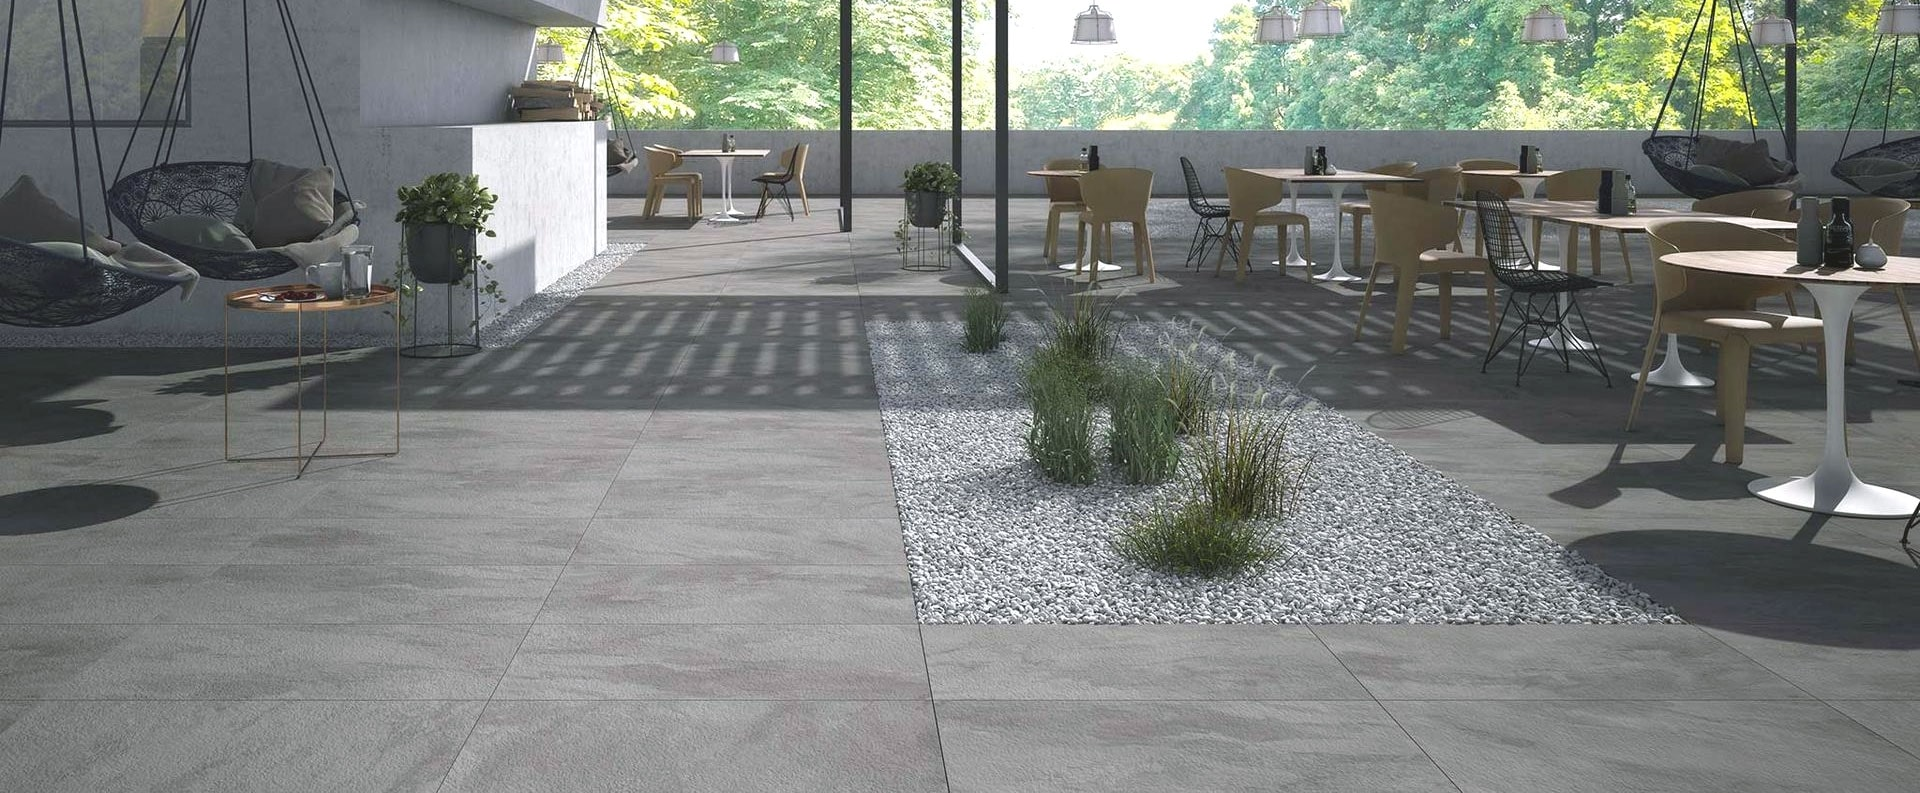 20mm Patio Tiles